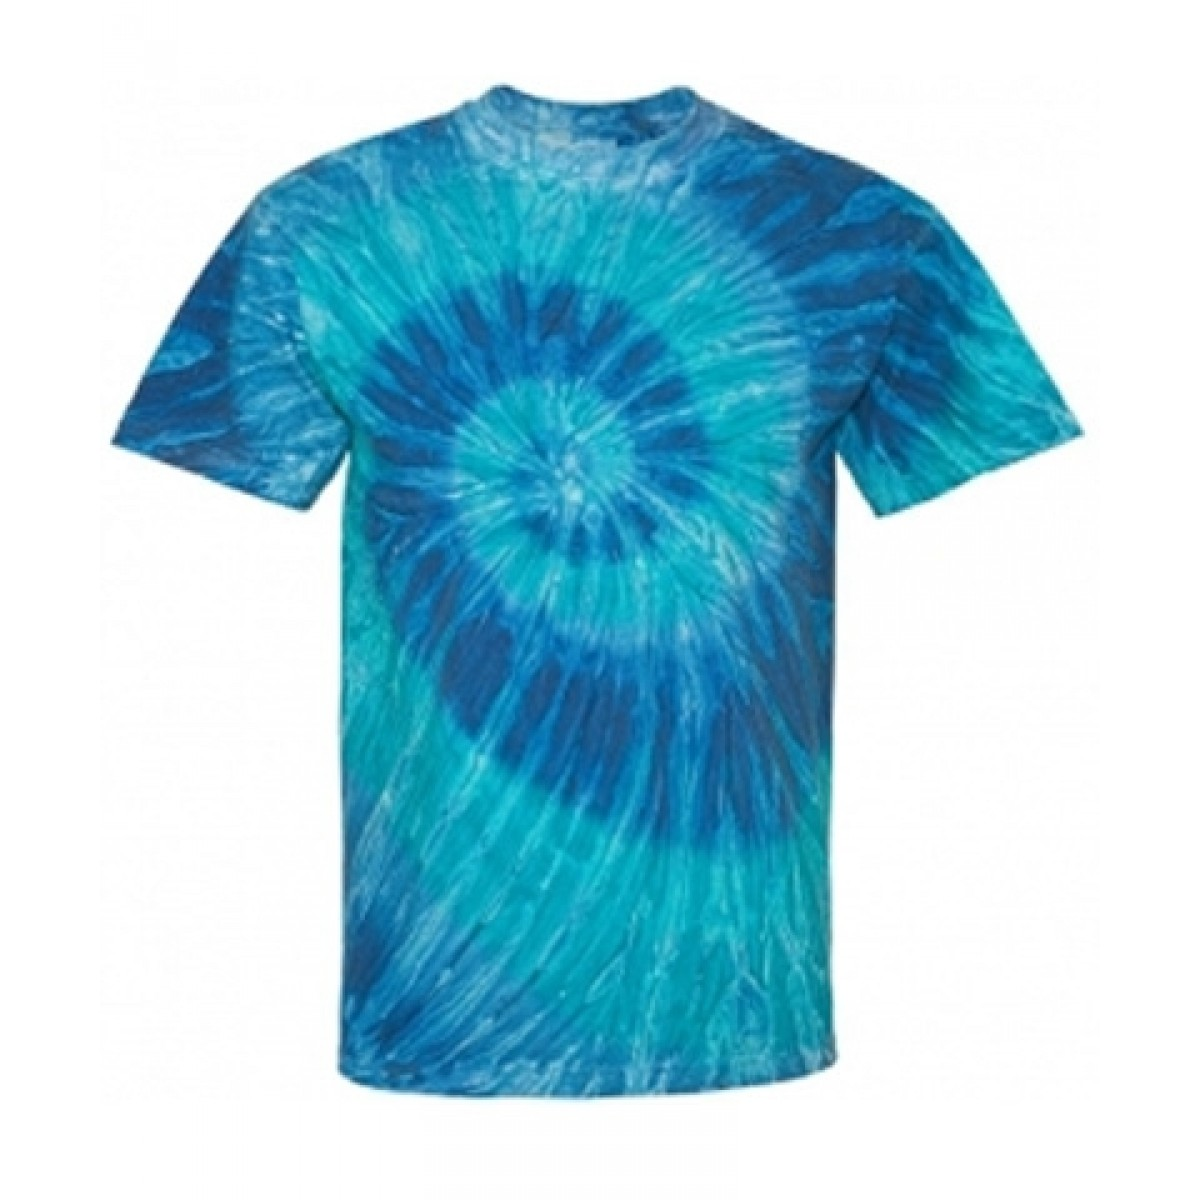 Blue or Black Ripple Tie Dye T-Shirt-Scuba Blue -2XL